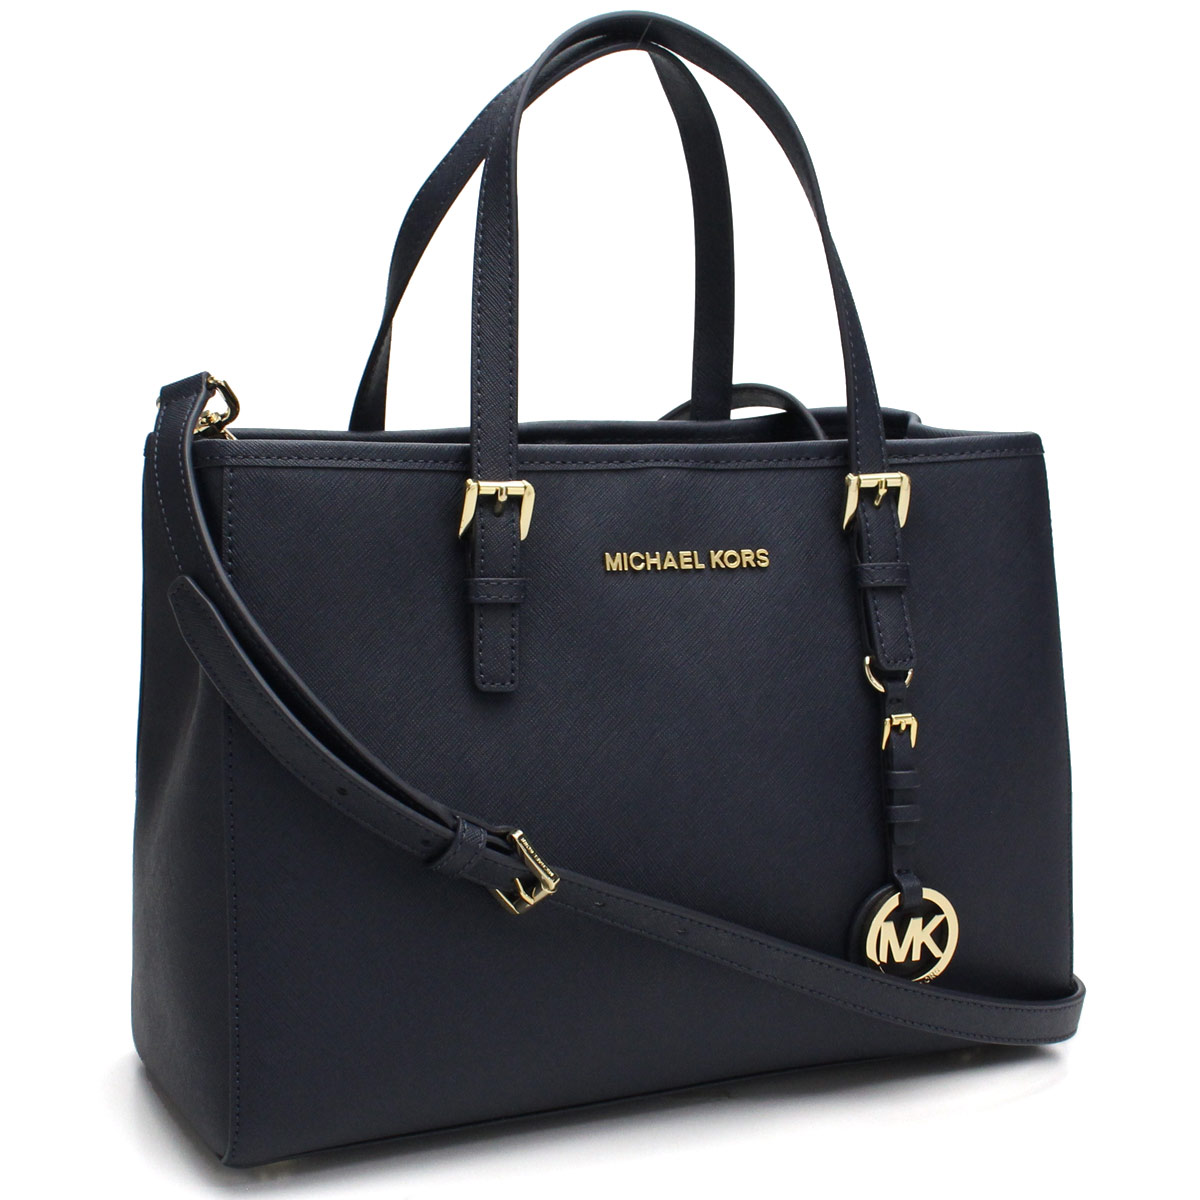 f27cf801a7061e Bighit The total brand wholesale: Michael Kors (MICHAEL KORS) JET SET  TRAVEL jet set travel tote bag 30H3GTVT8L ADMIRAL navy system | Rakuten  Global Market